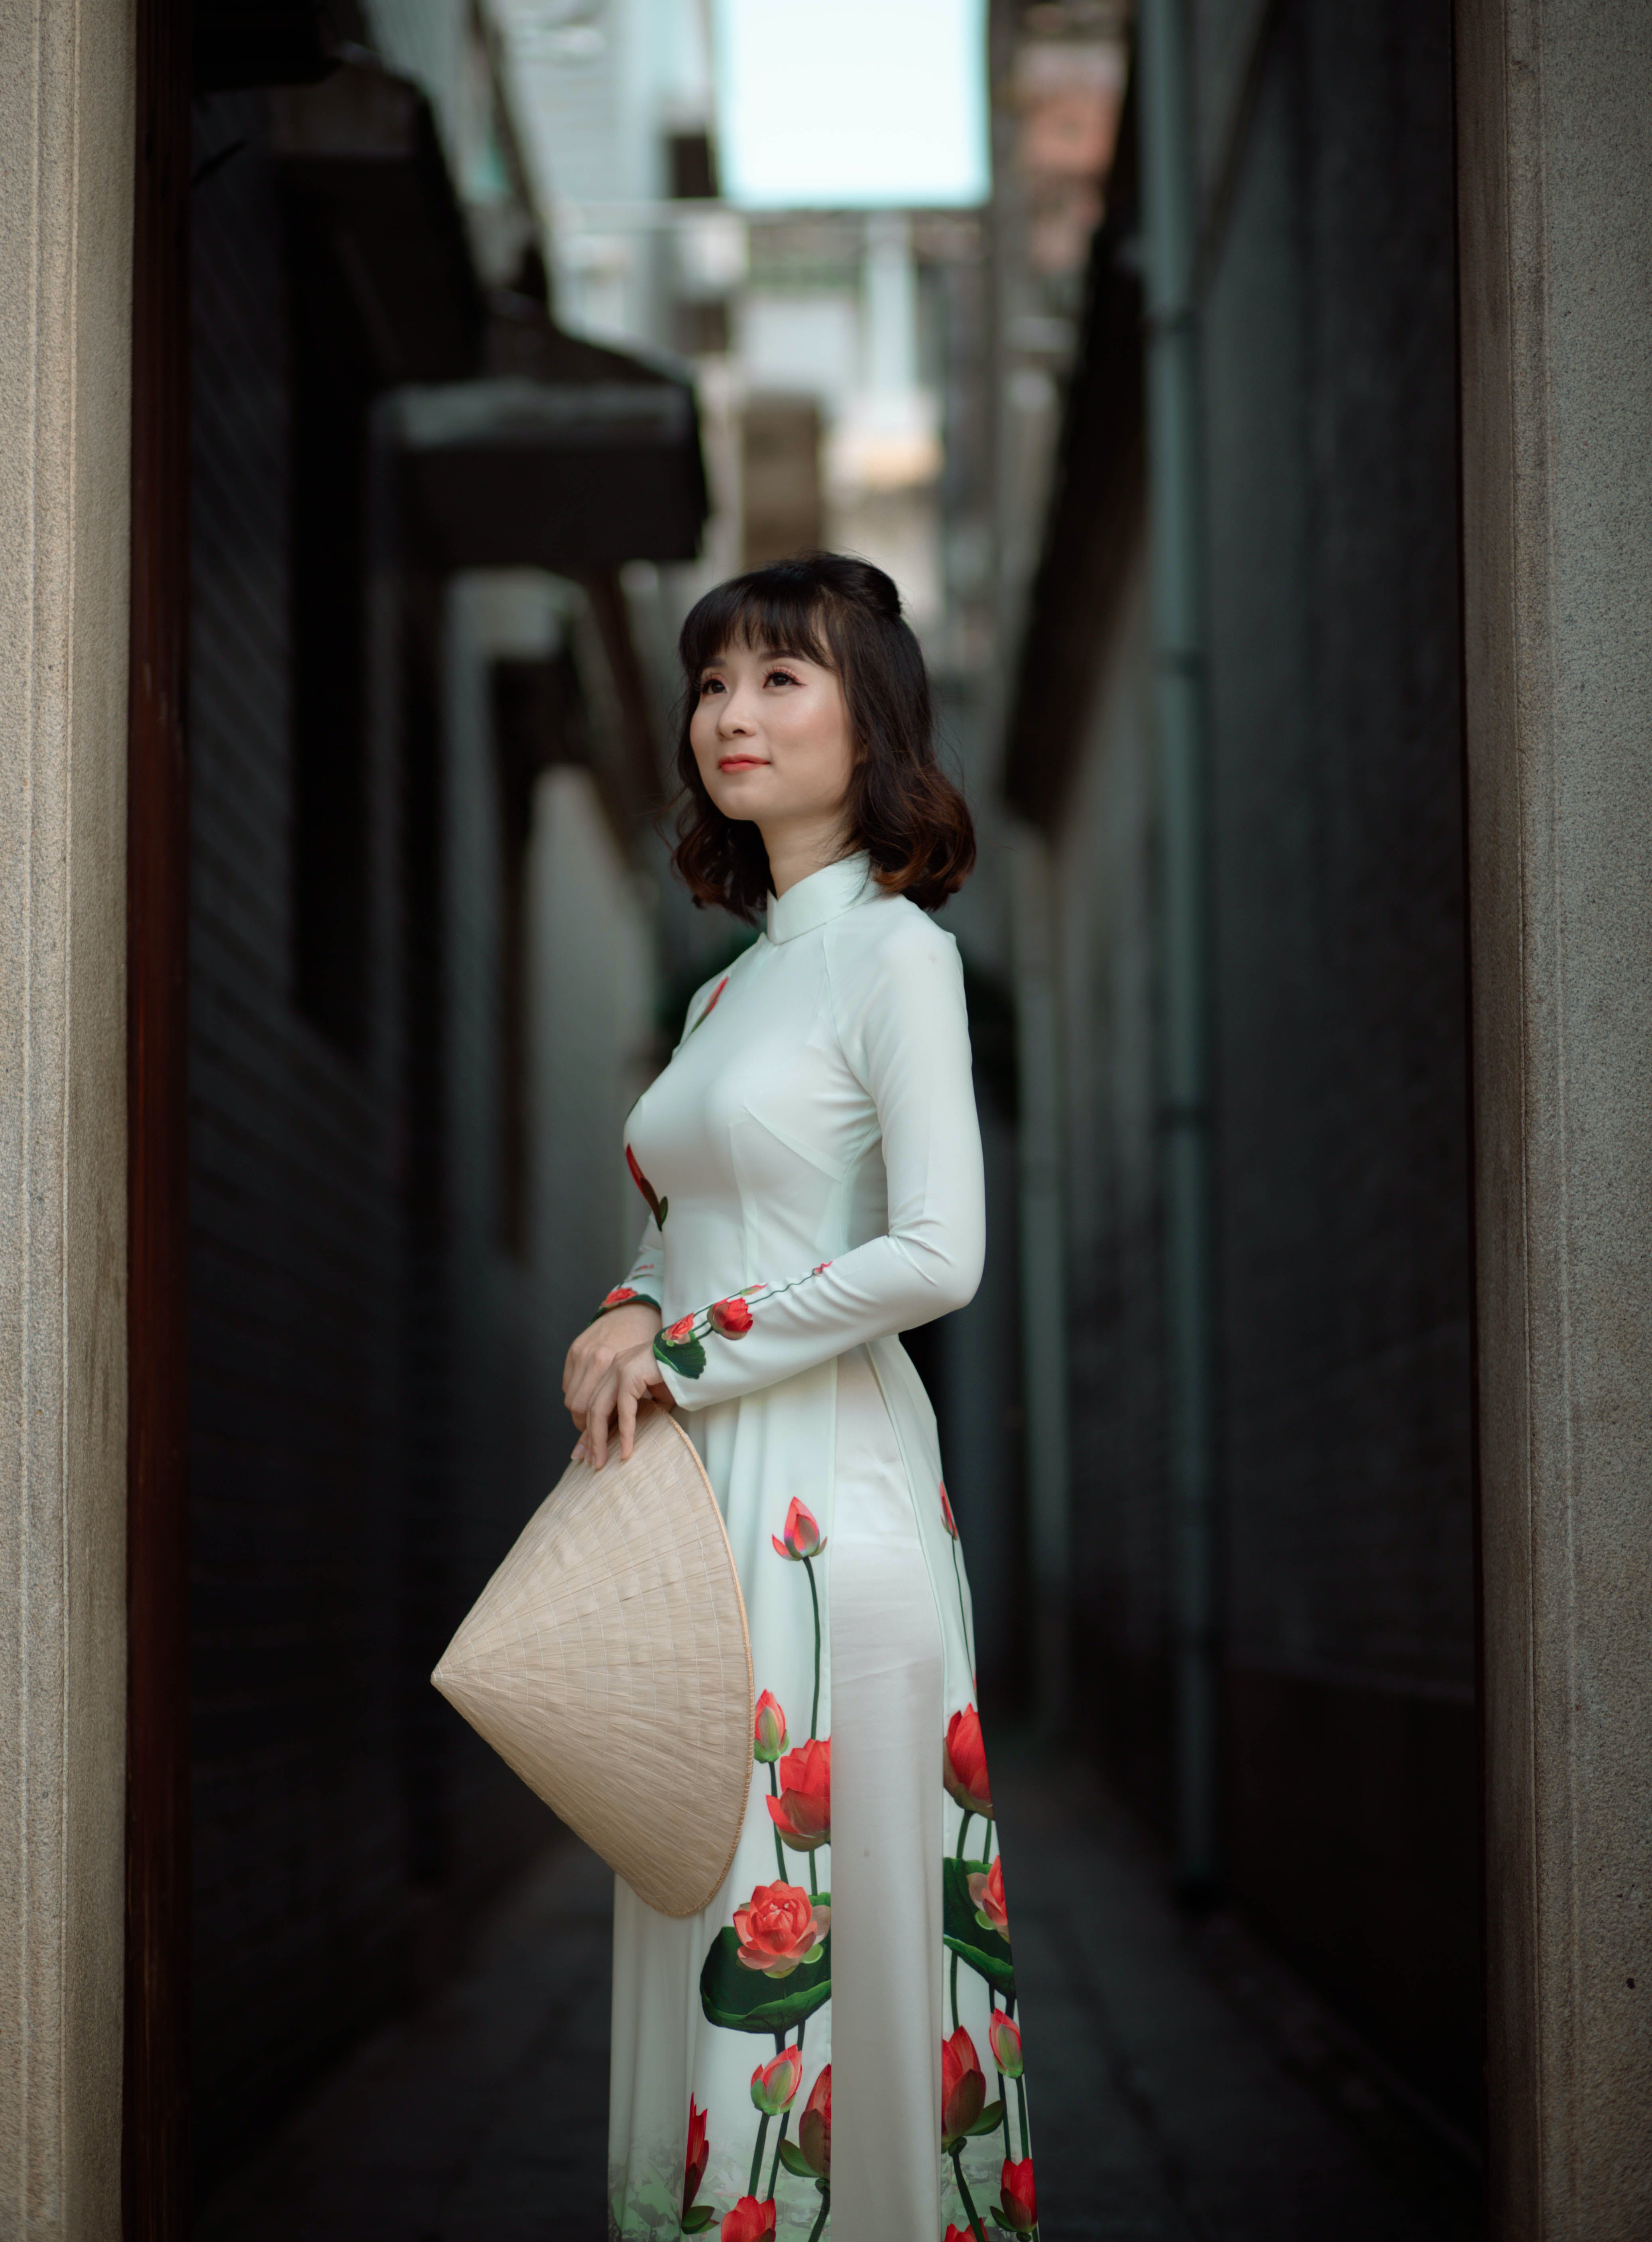 Lady In White Floral Dress